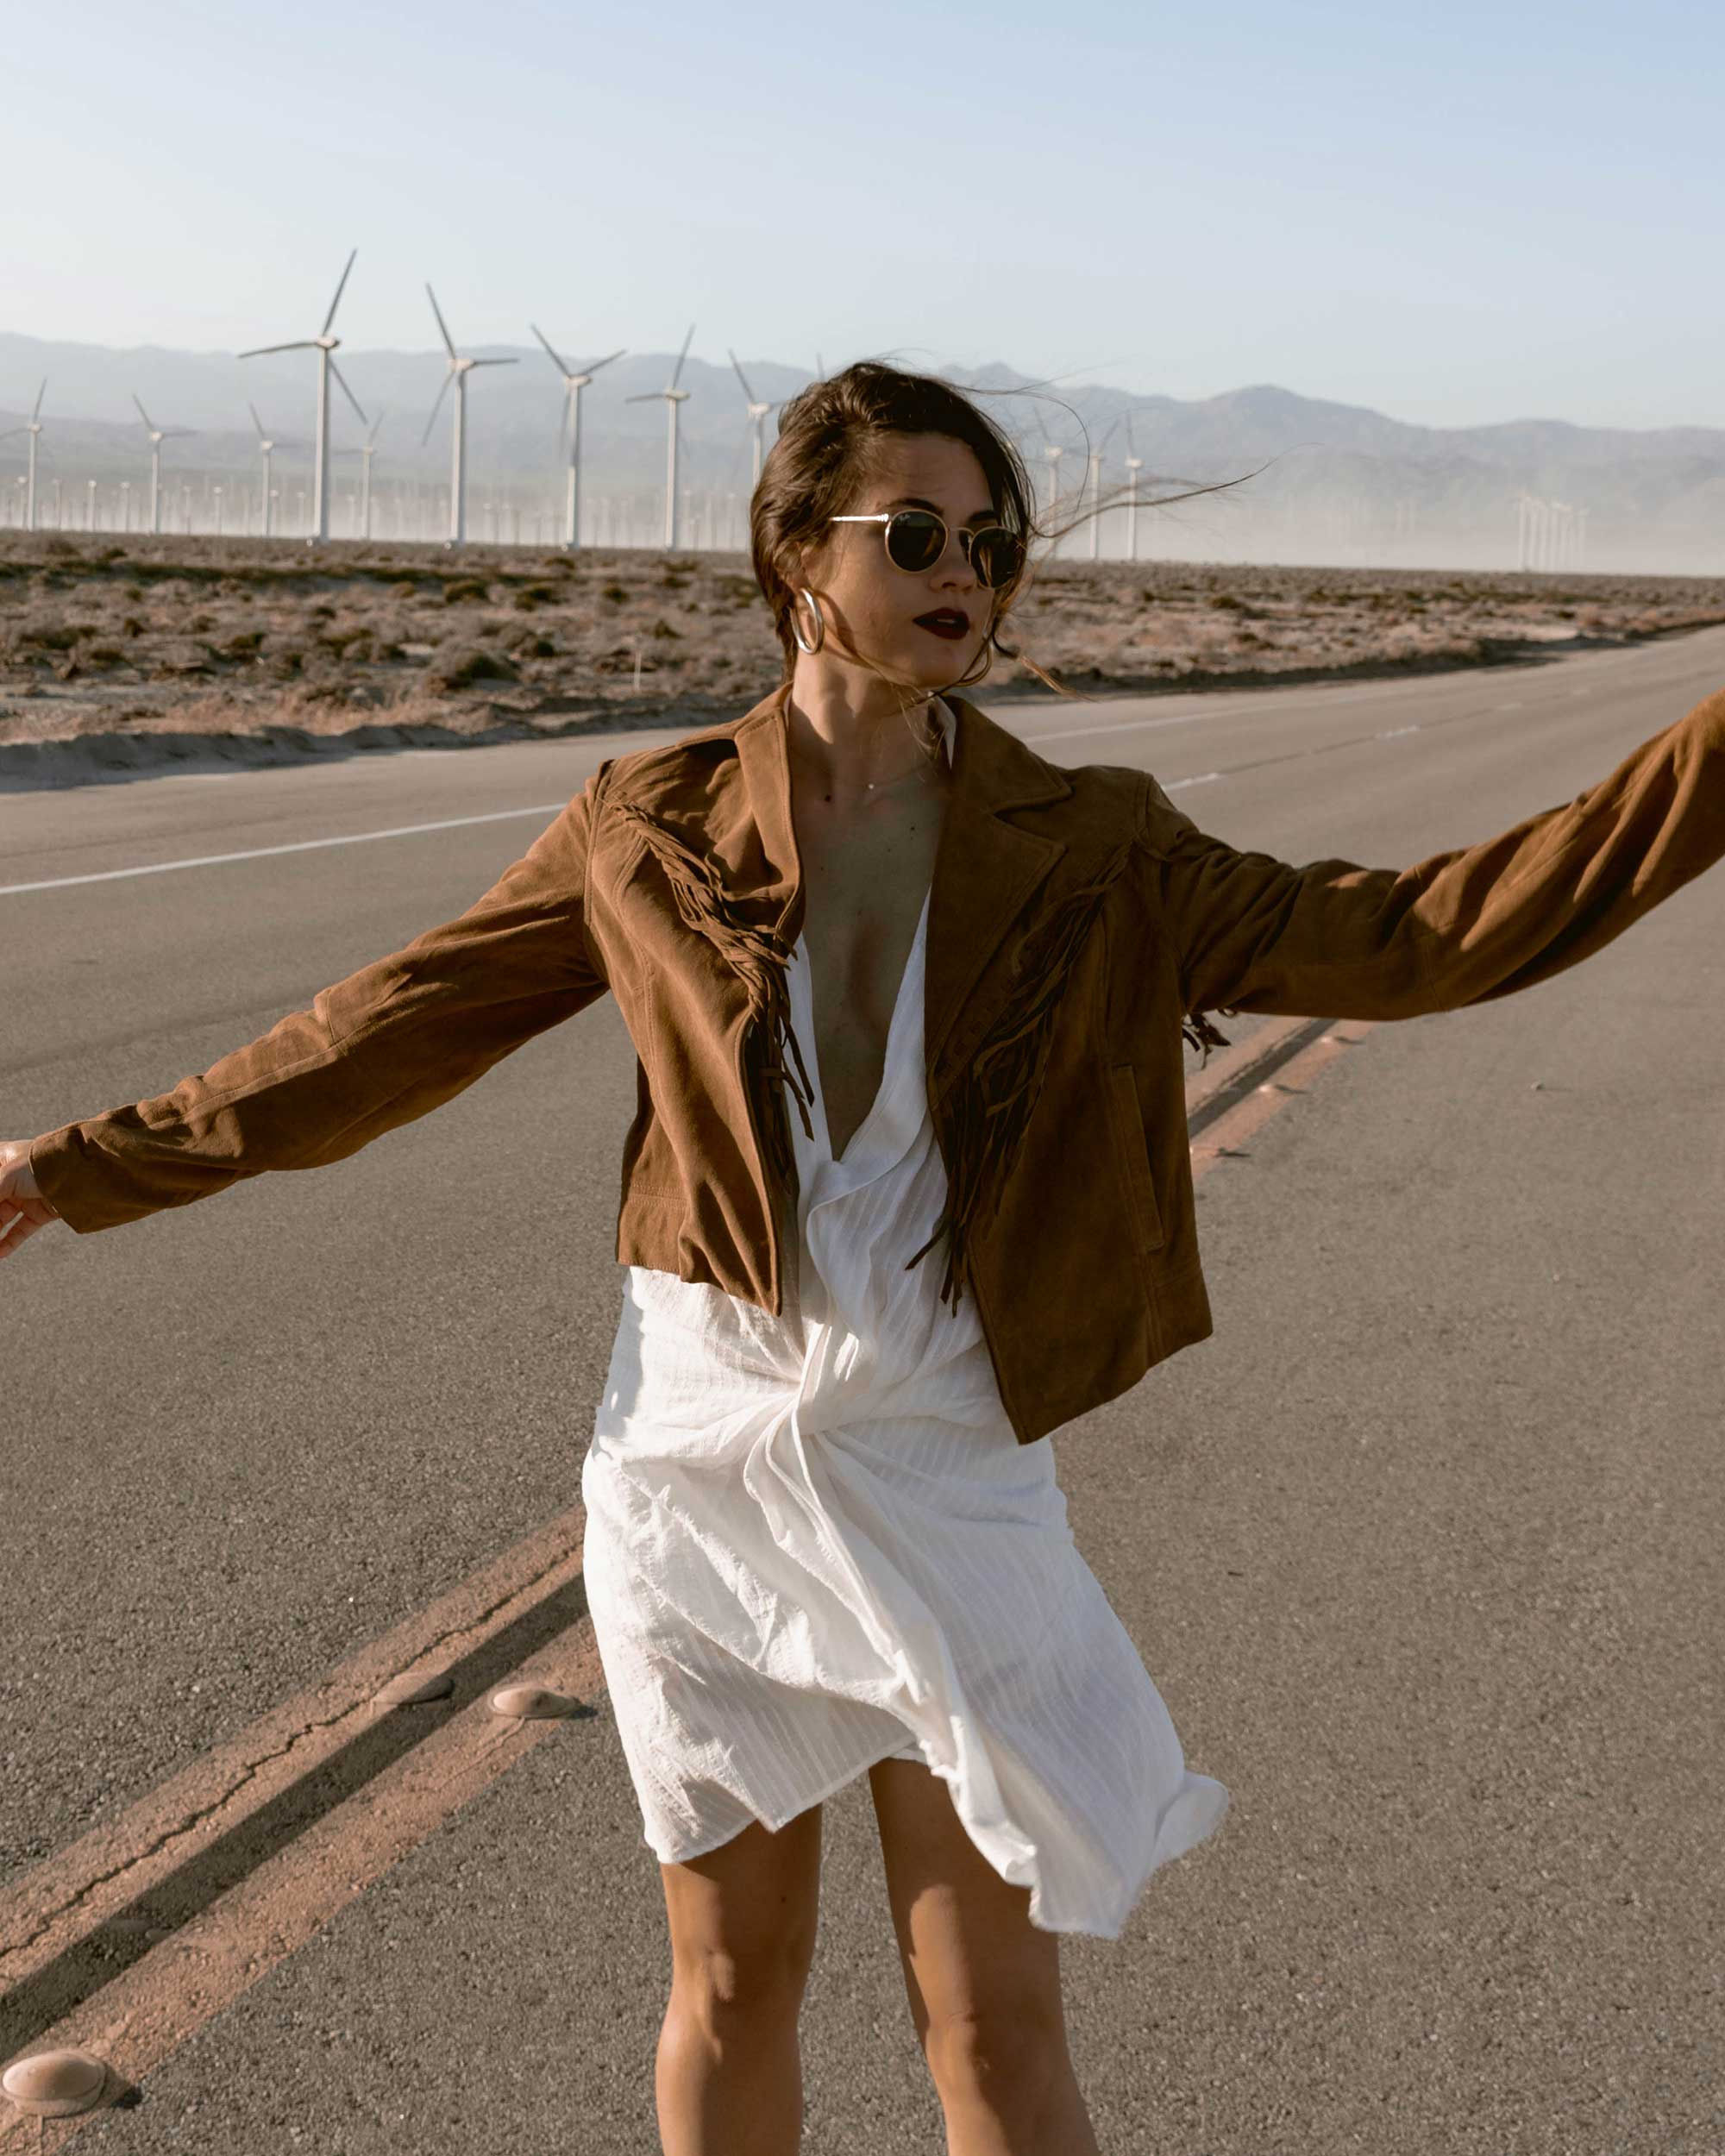 Sarah-Butler-of-Sarah-Styles-Seattle-wears-Jacquemus-Alassio-draped-white-cotton-mini-dress,-Paige-Darlene-Fringed-Suede-Jacket,-and-Paige-suede-western-boot-in-Palm-Springs-for-Coachella-Festival-Outfit-_-@sarahchristine6.jpg